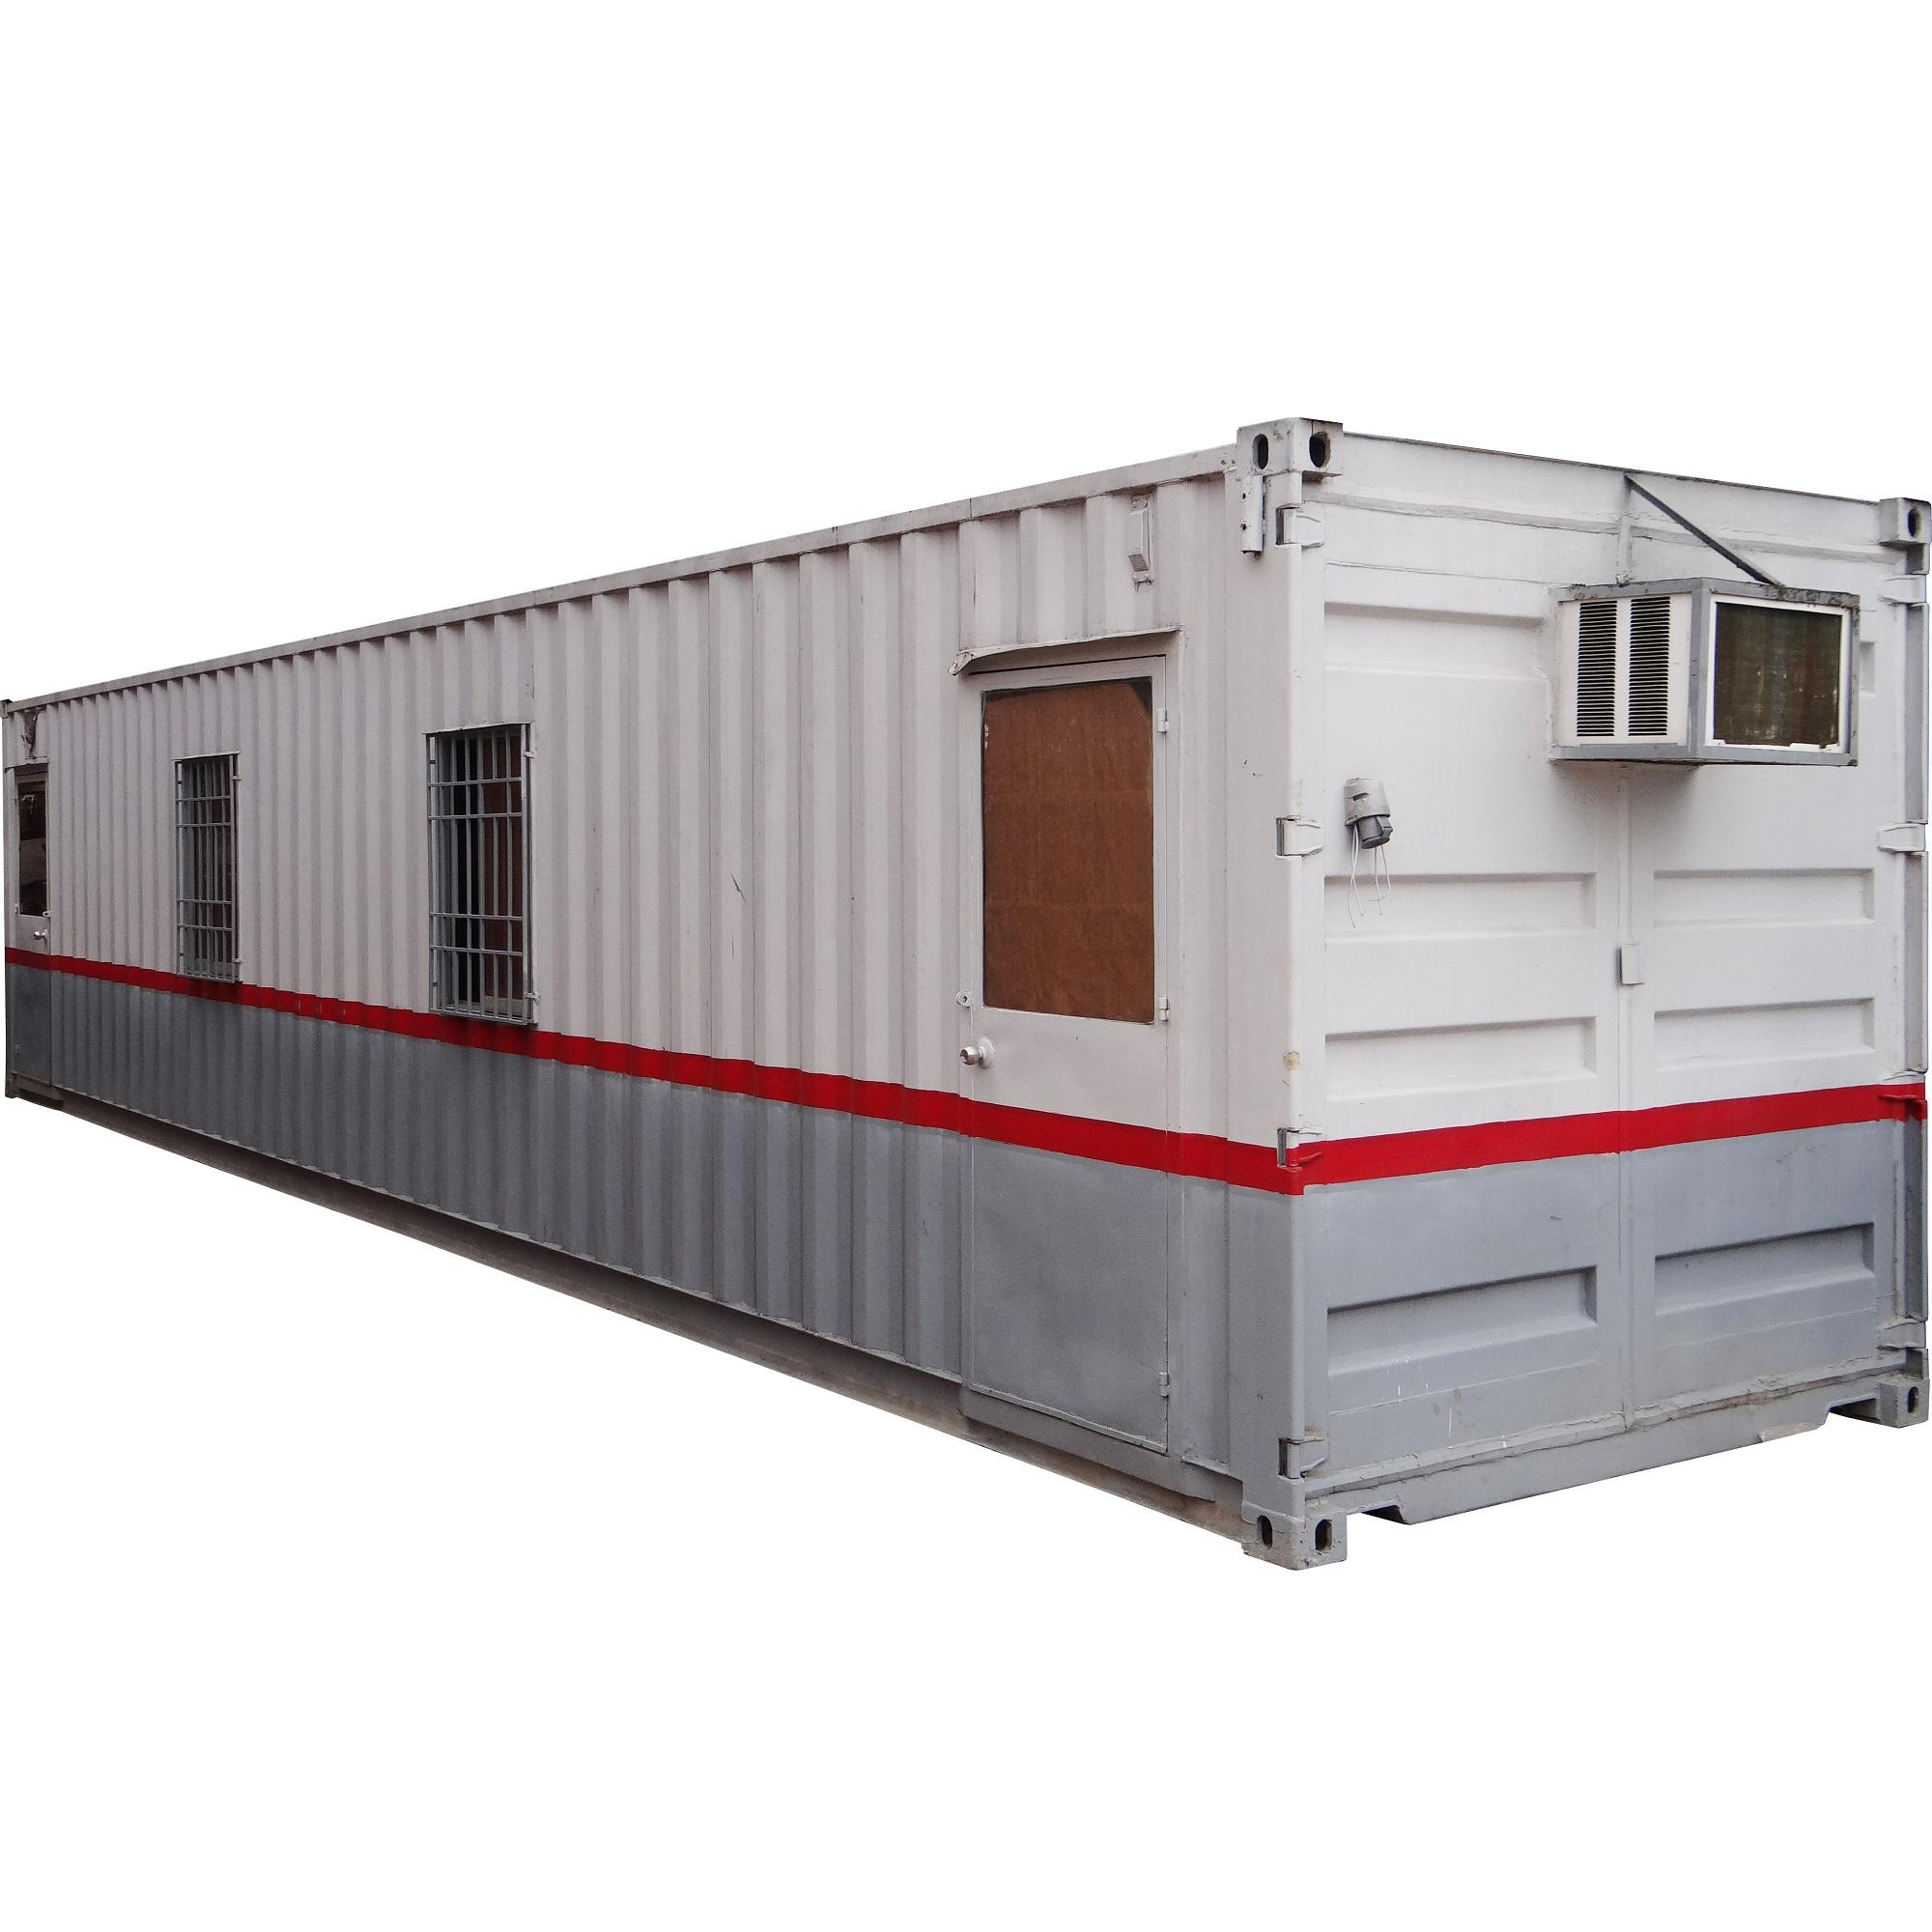 40 Feet Office Container with Toilet Premium Quality for Export Standard from Vietnam Origin